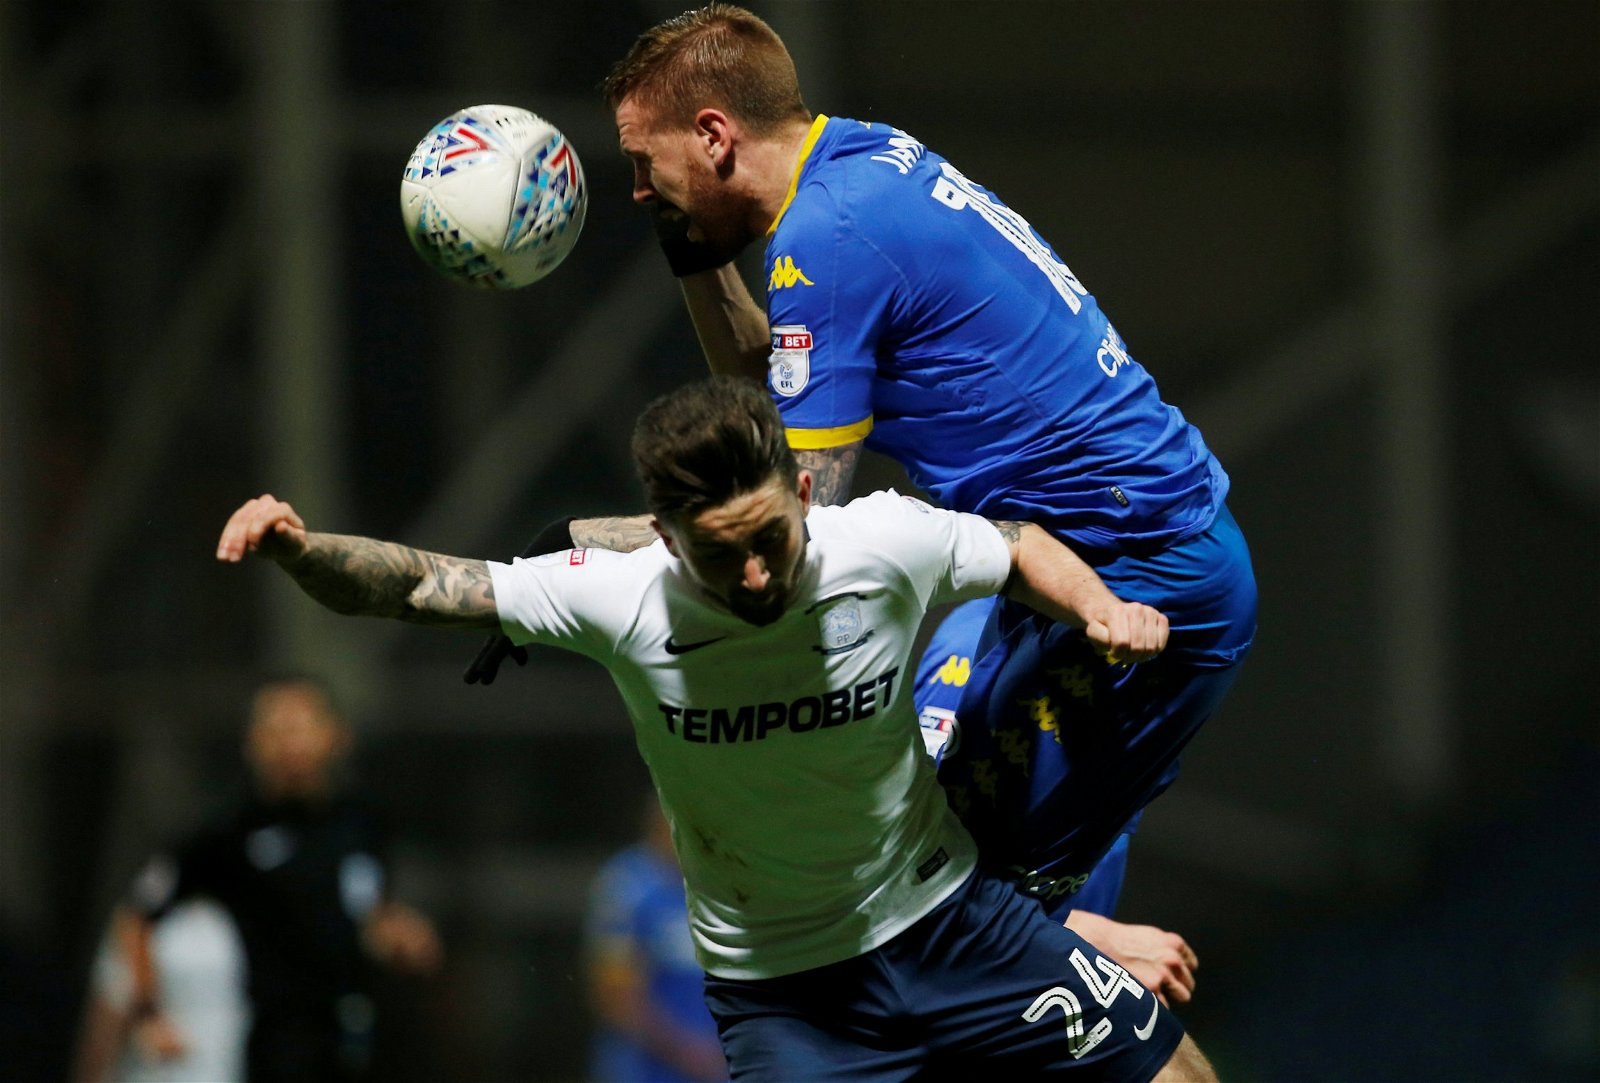 Pontus Jansson in action for Leeds United